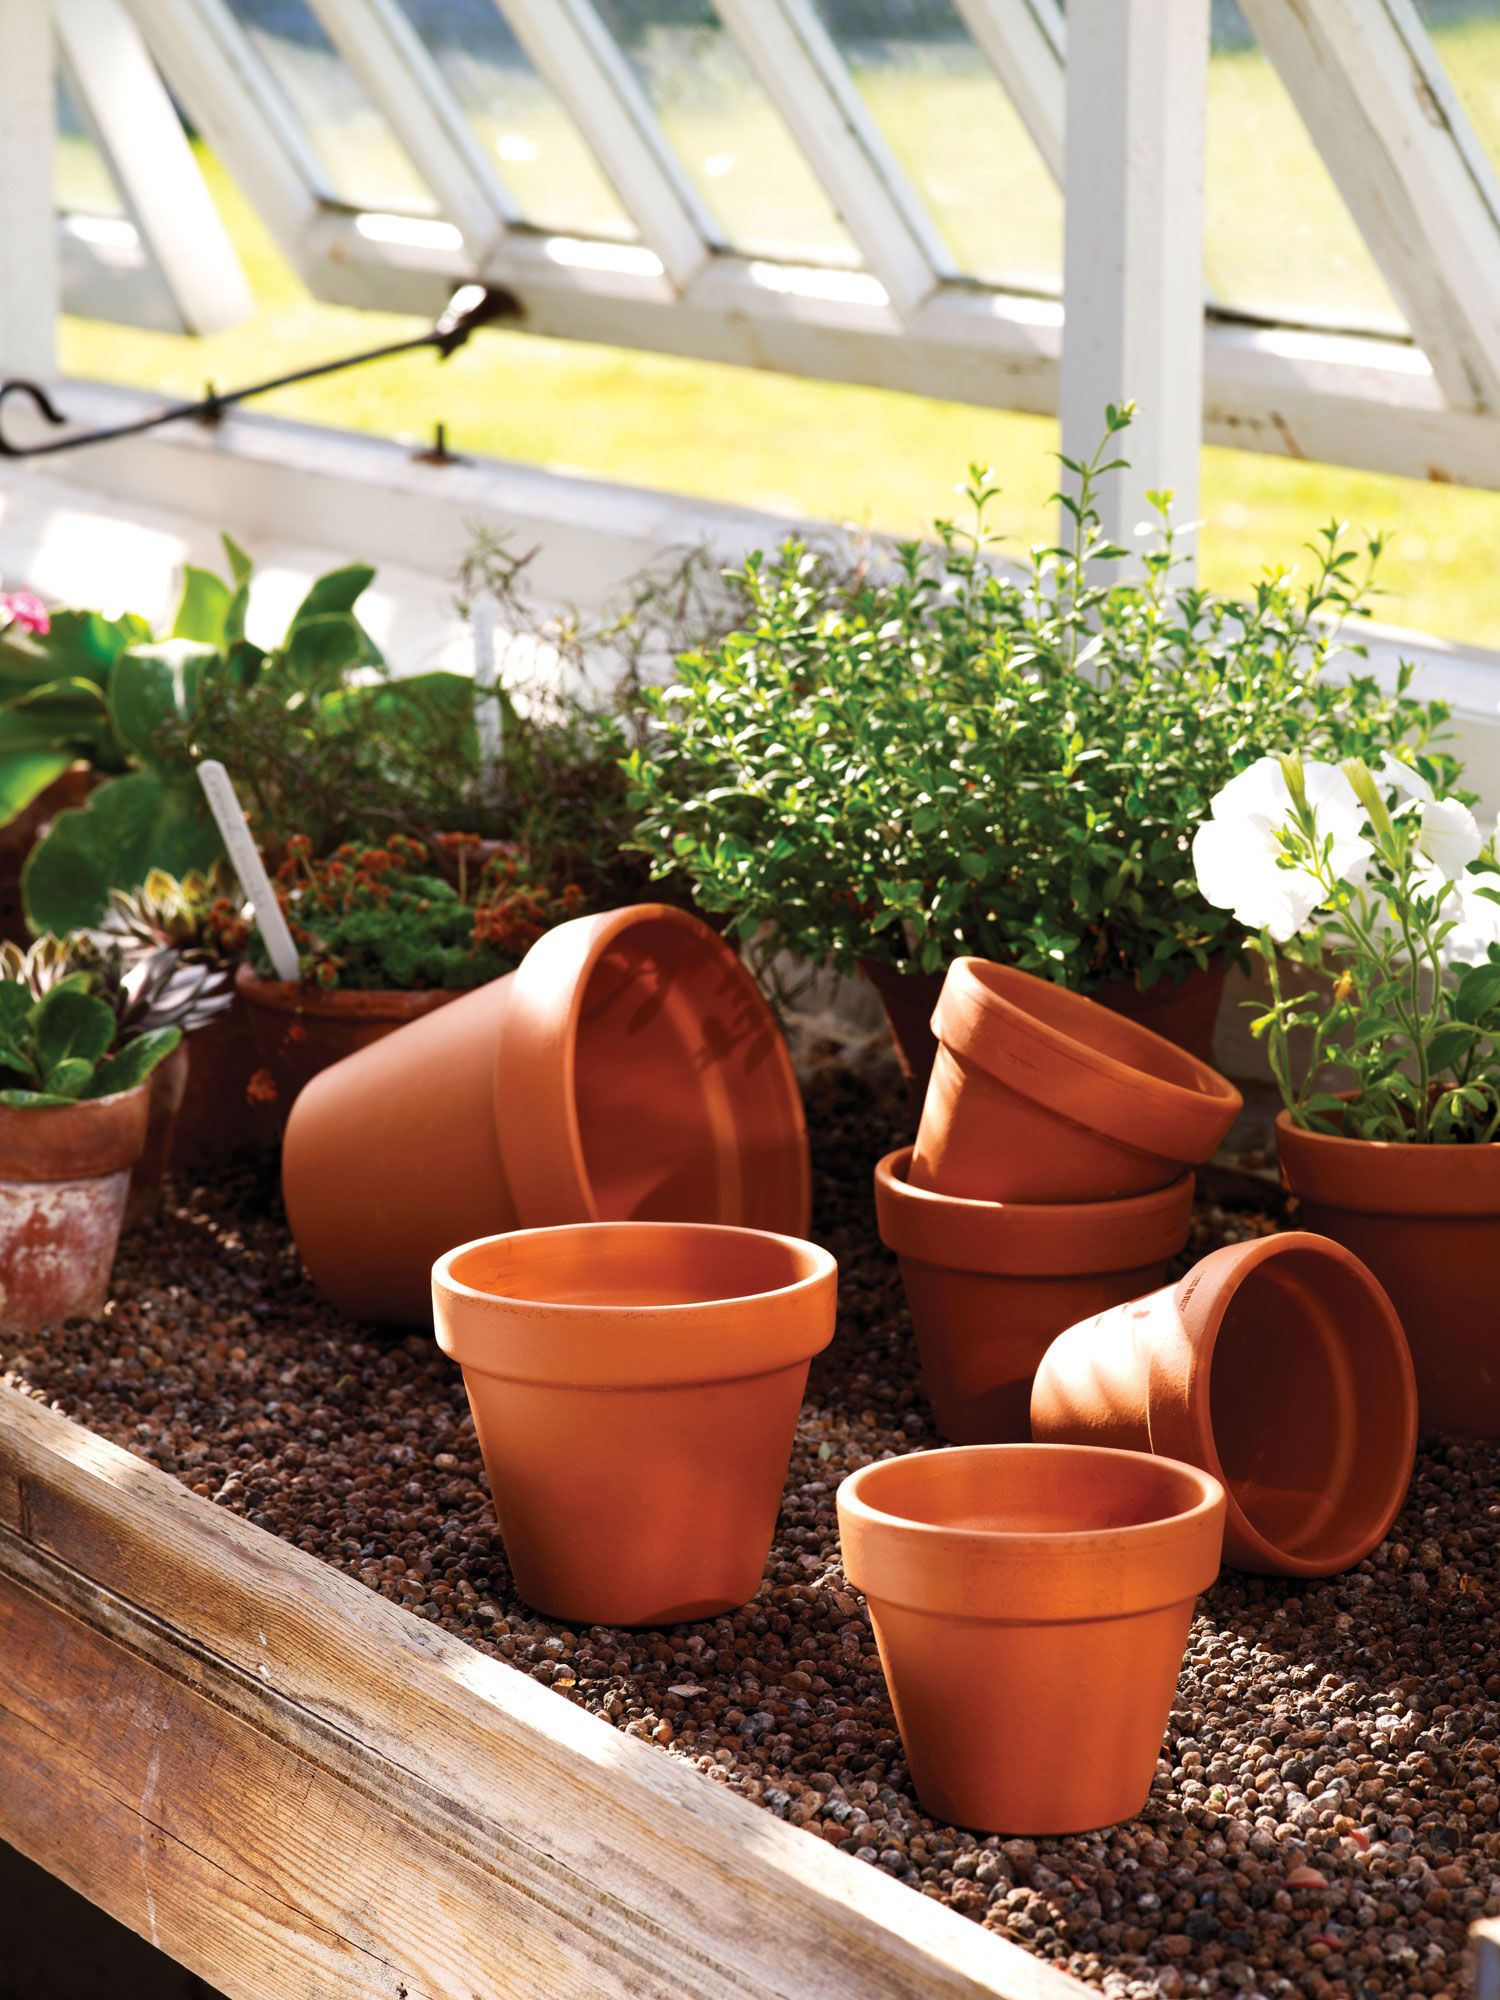 Riverhill Garden Supplies Offer An Extensive Range Of Everyday Terracotta  Garden Pots For The Potting Shed